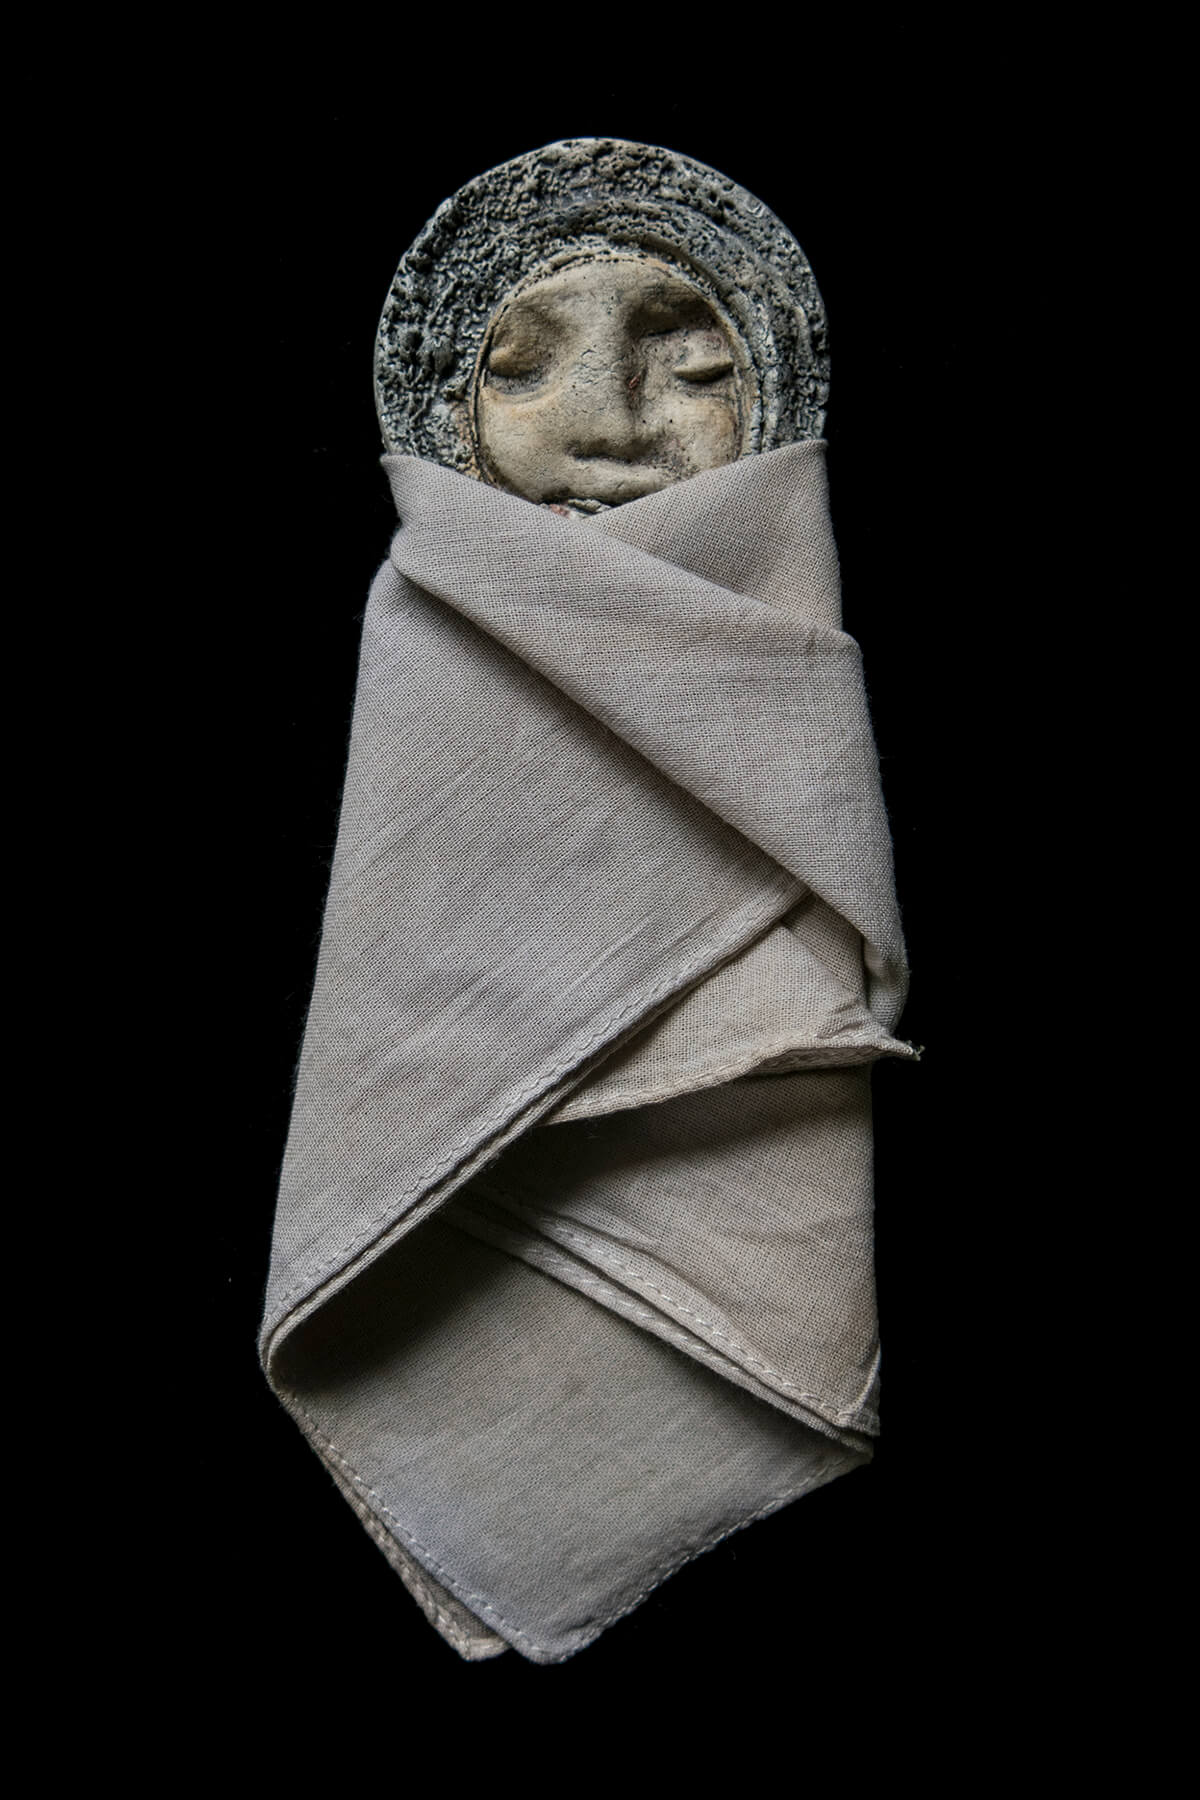 A photograph of a figurine with a round medallion-like head with eyes closed. The whole rest of the body of the figurine is swaddled in rough cloth, wrapped carefully like a small child.